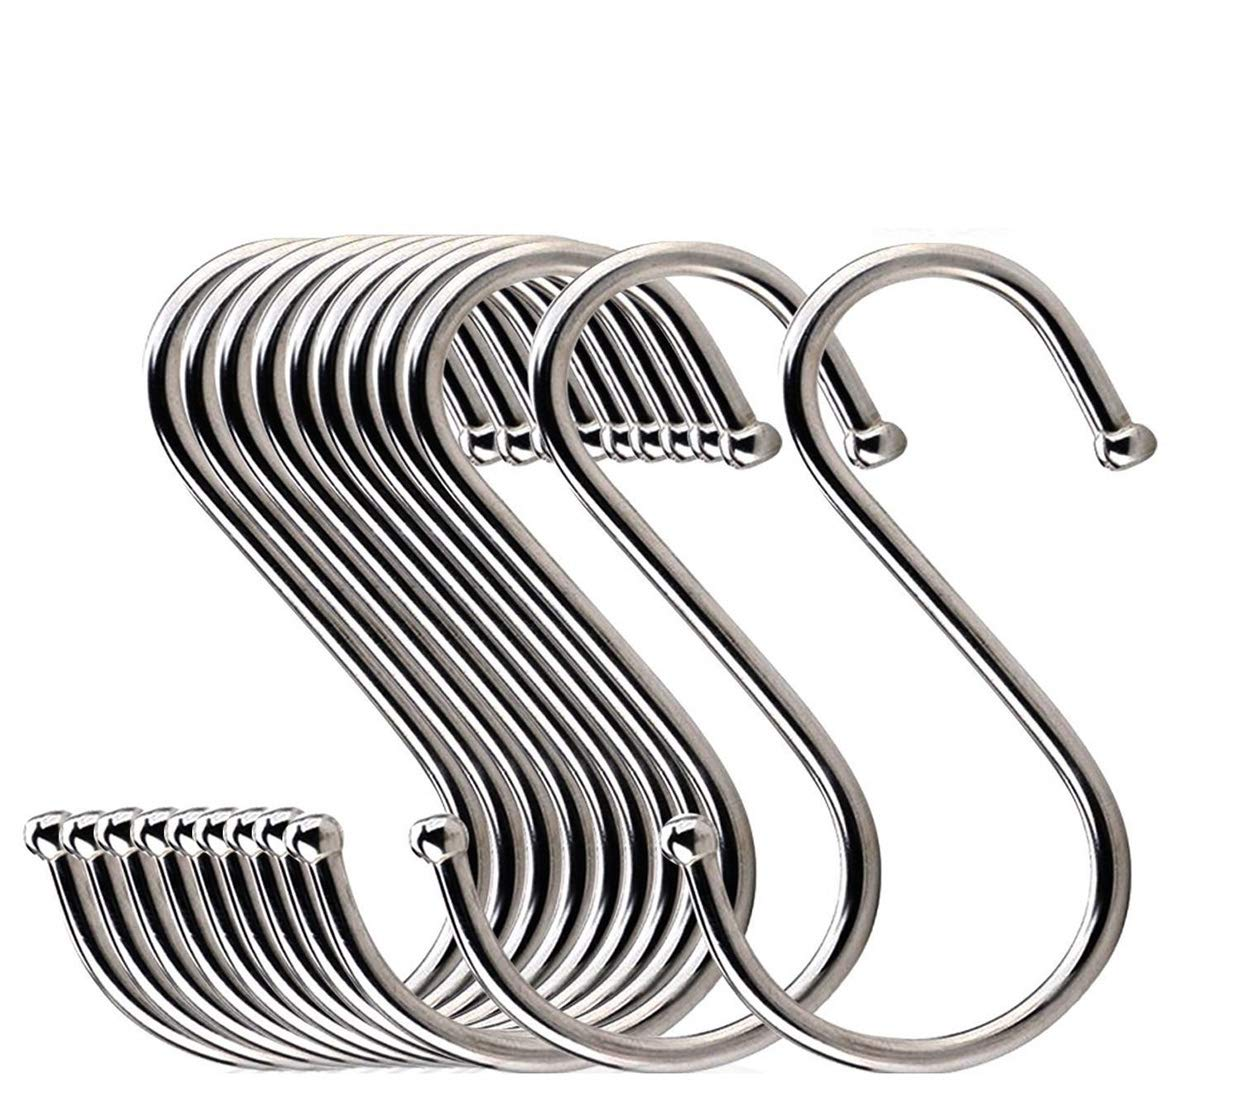 20Pcs S Shaped Hooks Stainless Steel Metal Hangers Hanging Hooks for Kitchen, Office, Work Shop, Bedroom, Bathroom, Garden